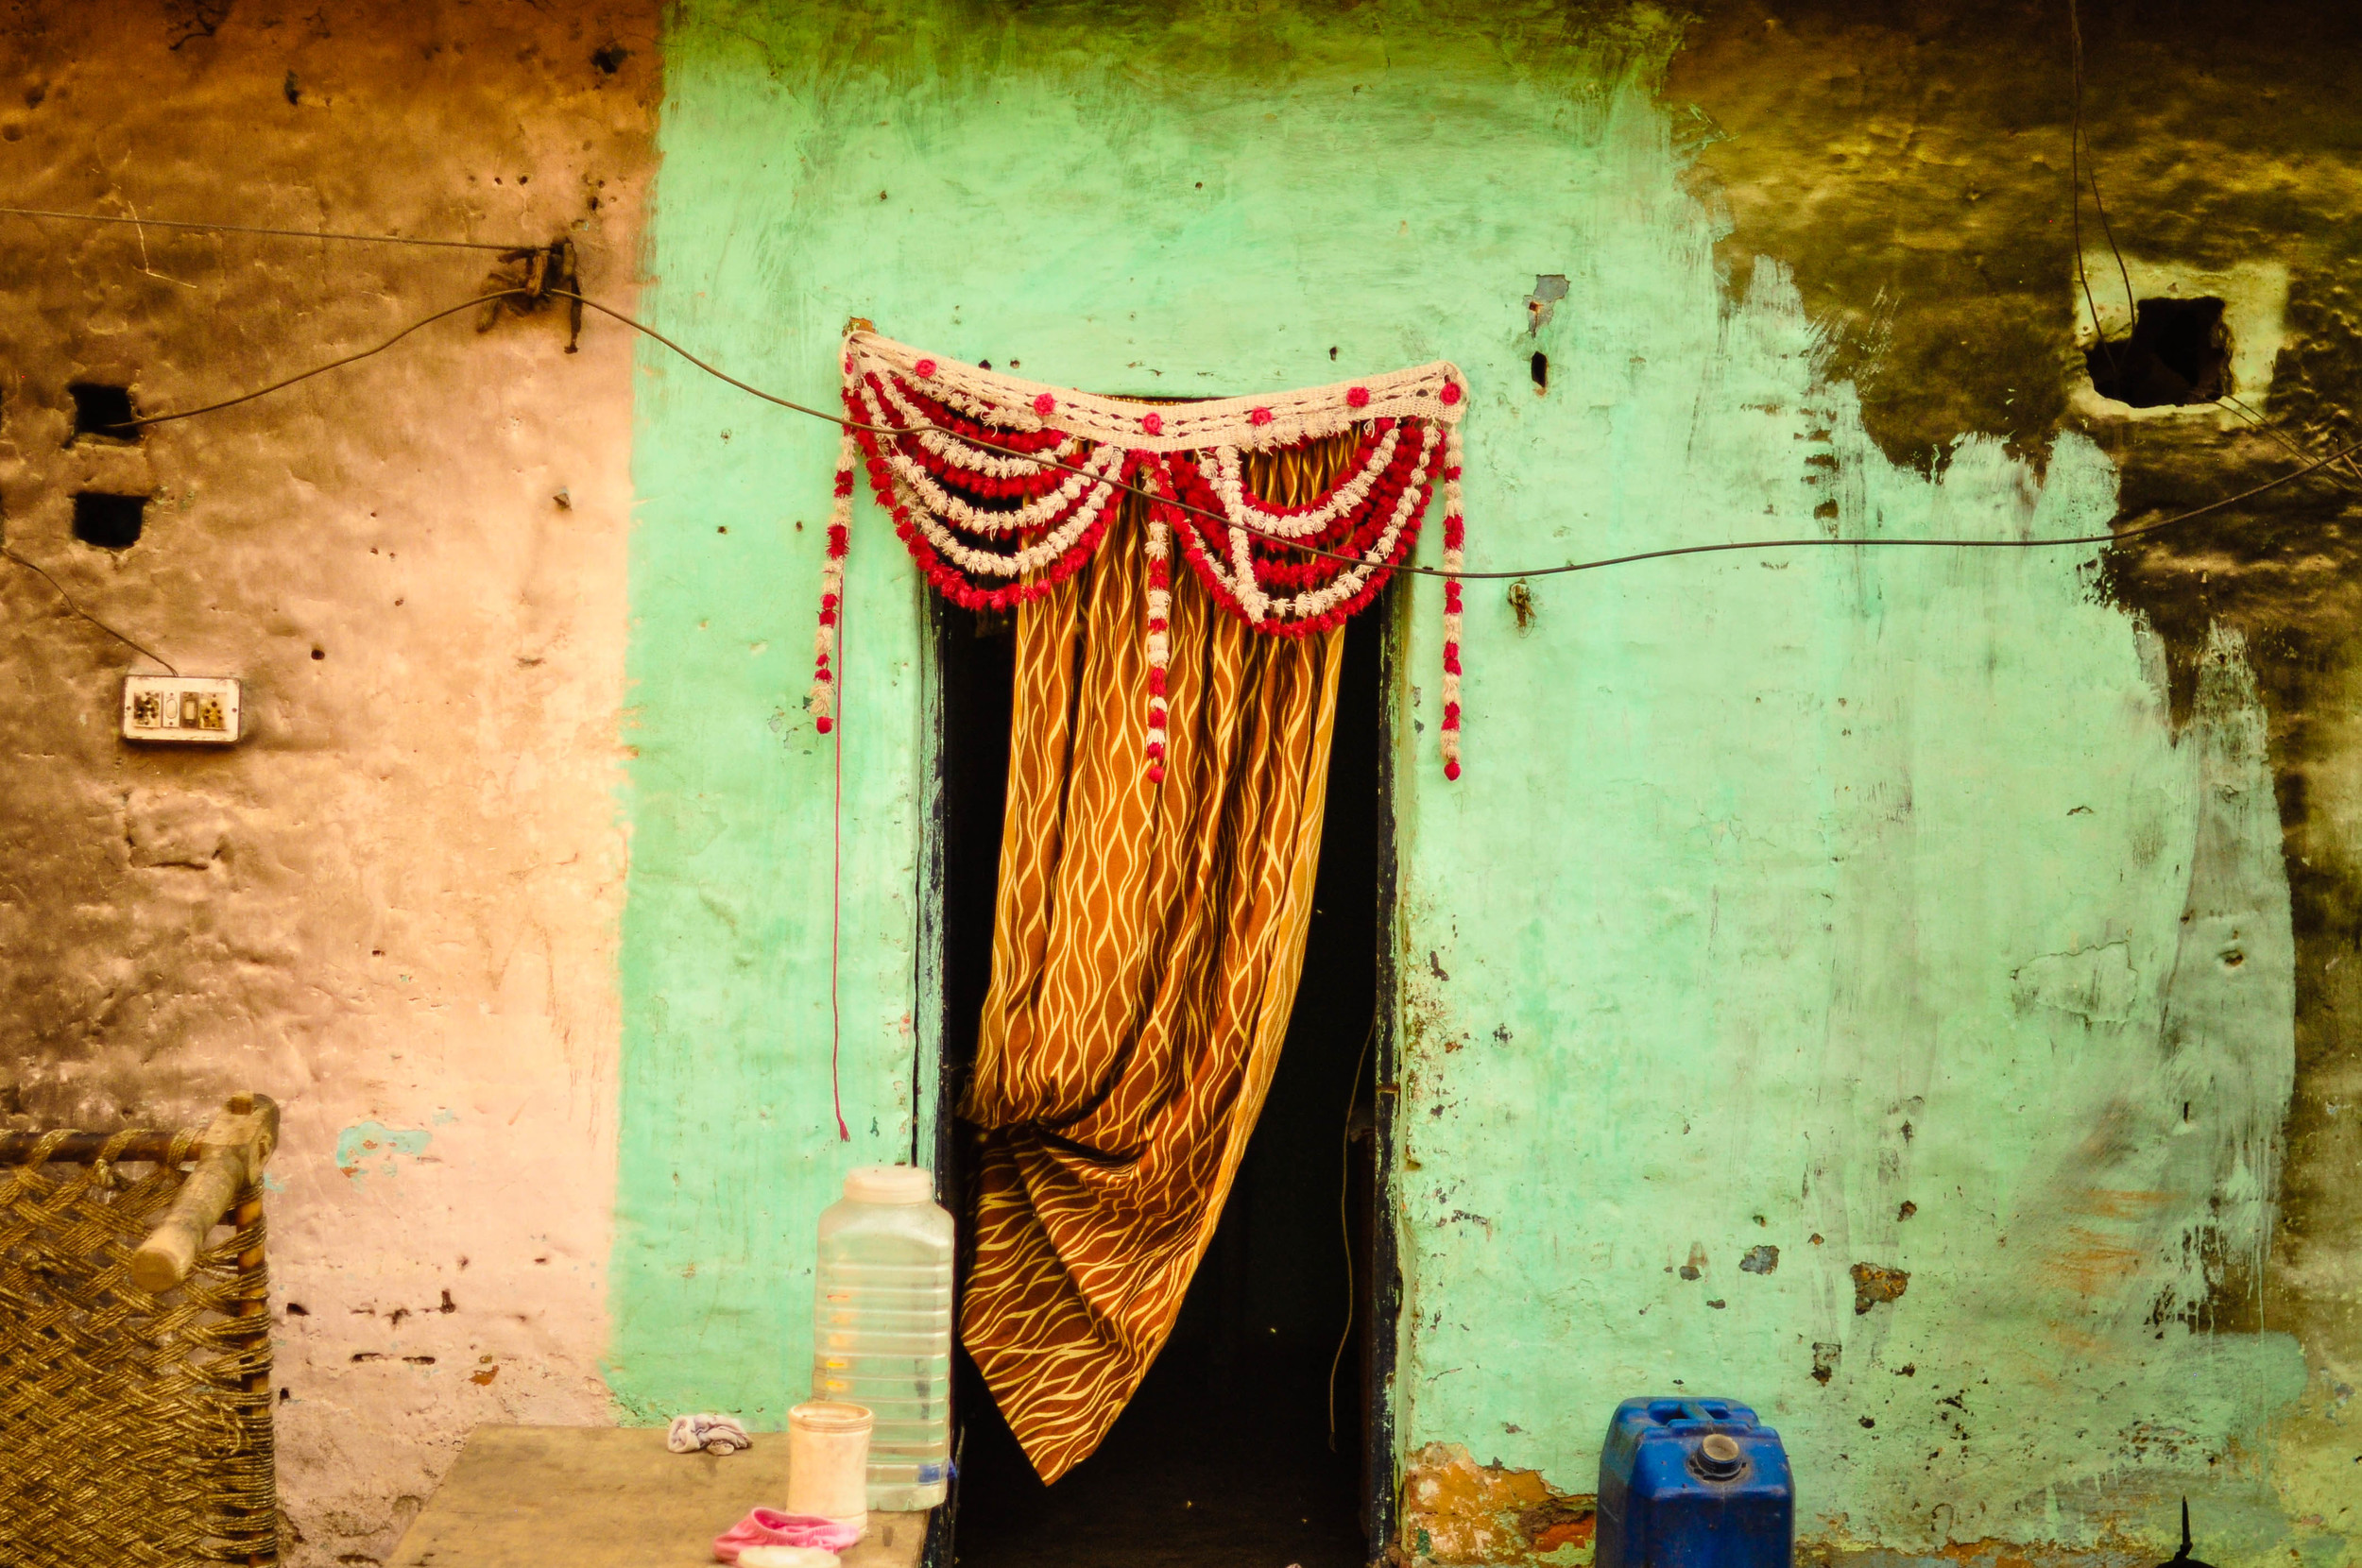 About 500 families live in Jasola Slum. They pay about $20 a month for one room that is no bigger than 10x10 square feet---the size of an American bathroom. Jasola Slum, India